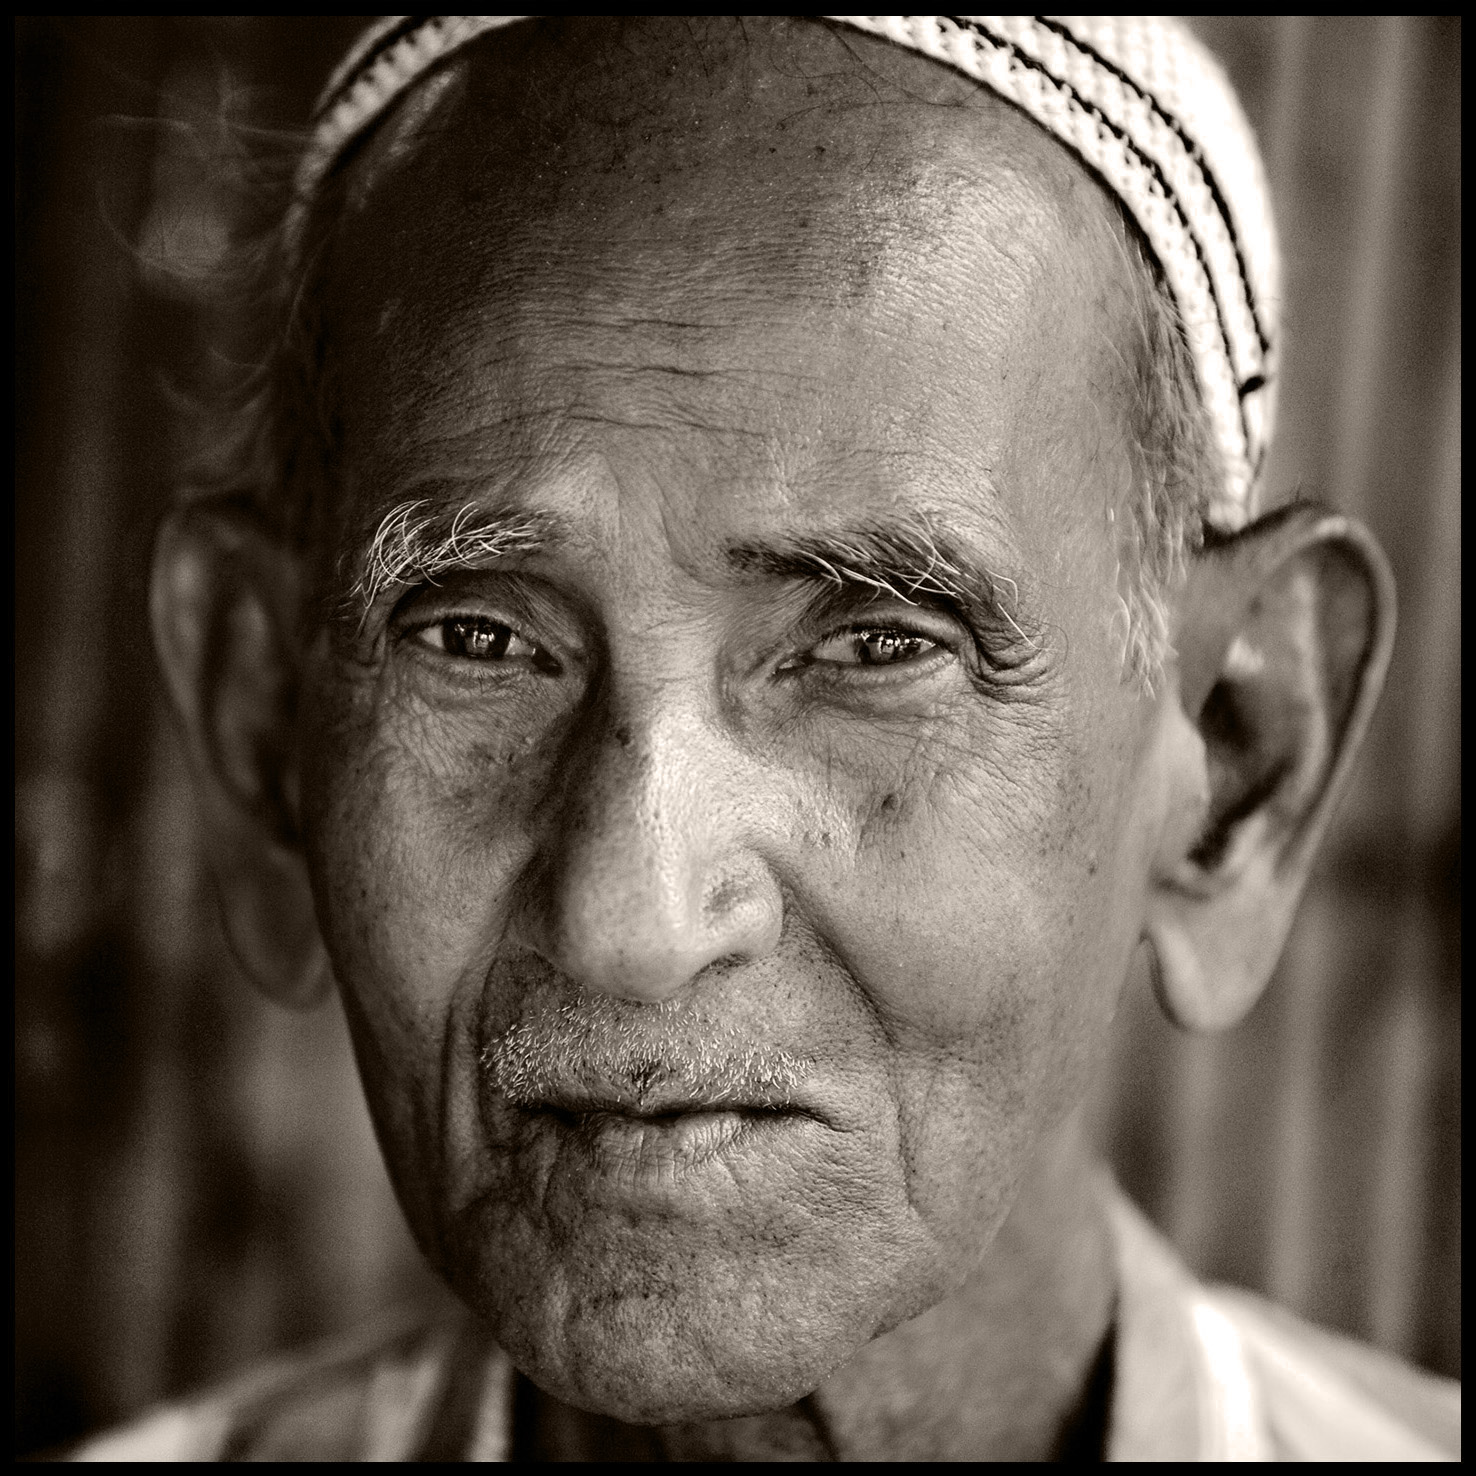 Click on image for 'Portrait of India'.